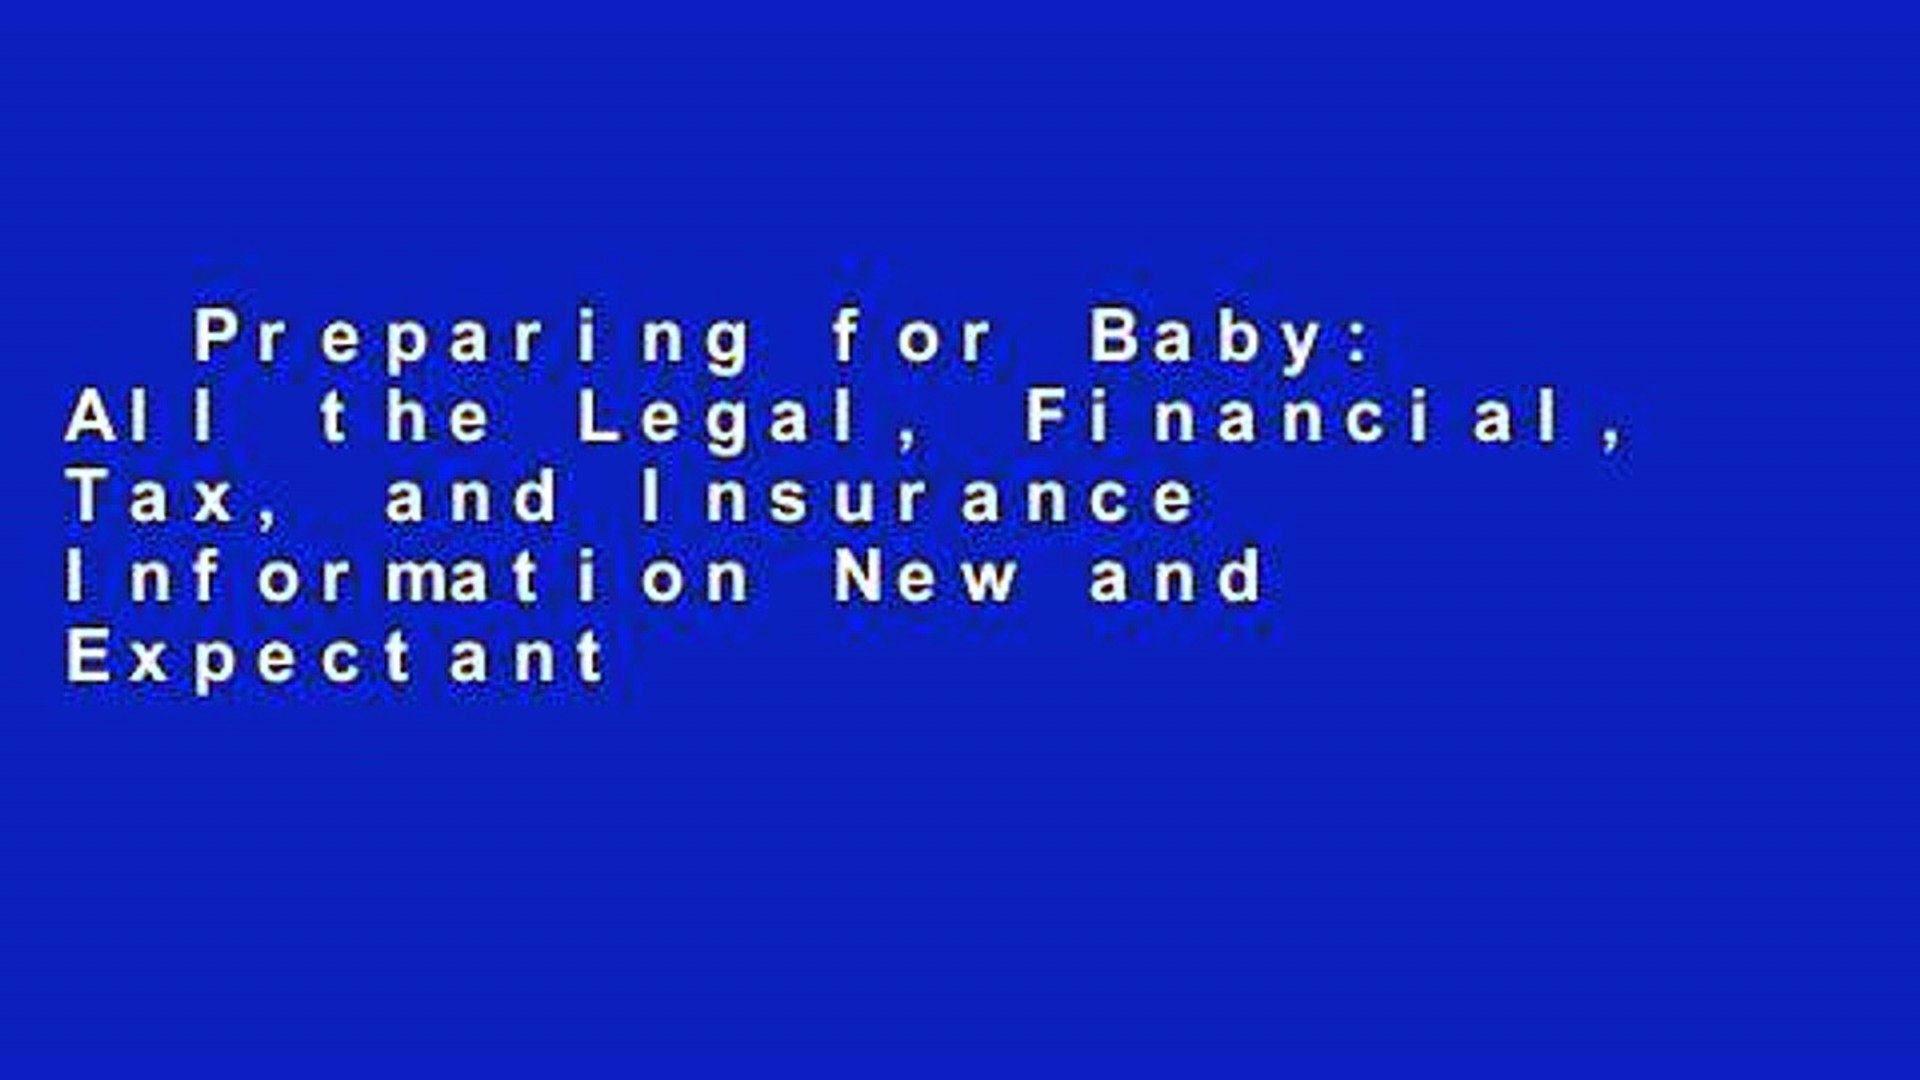 Preparing for Baby: All the Legal, Financial, Tax, and Insurance  Information New and Expectant